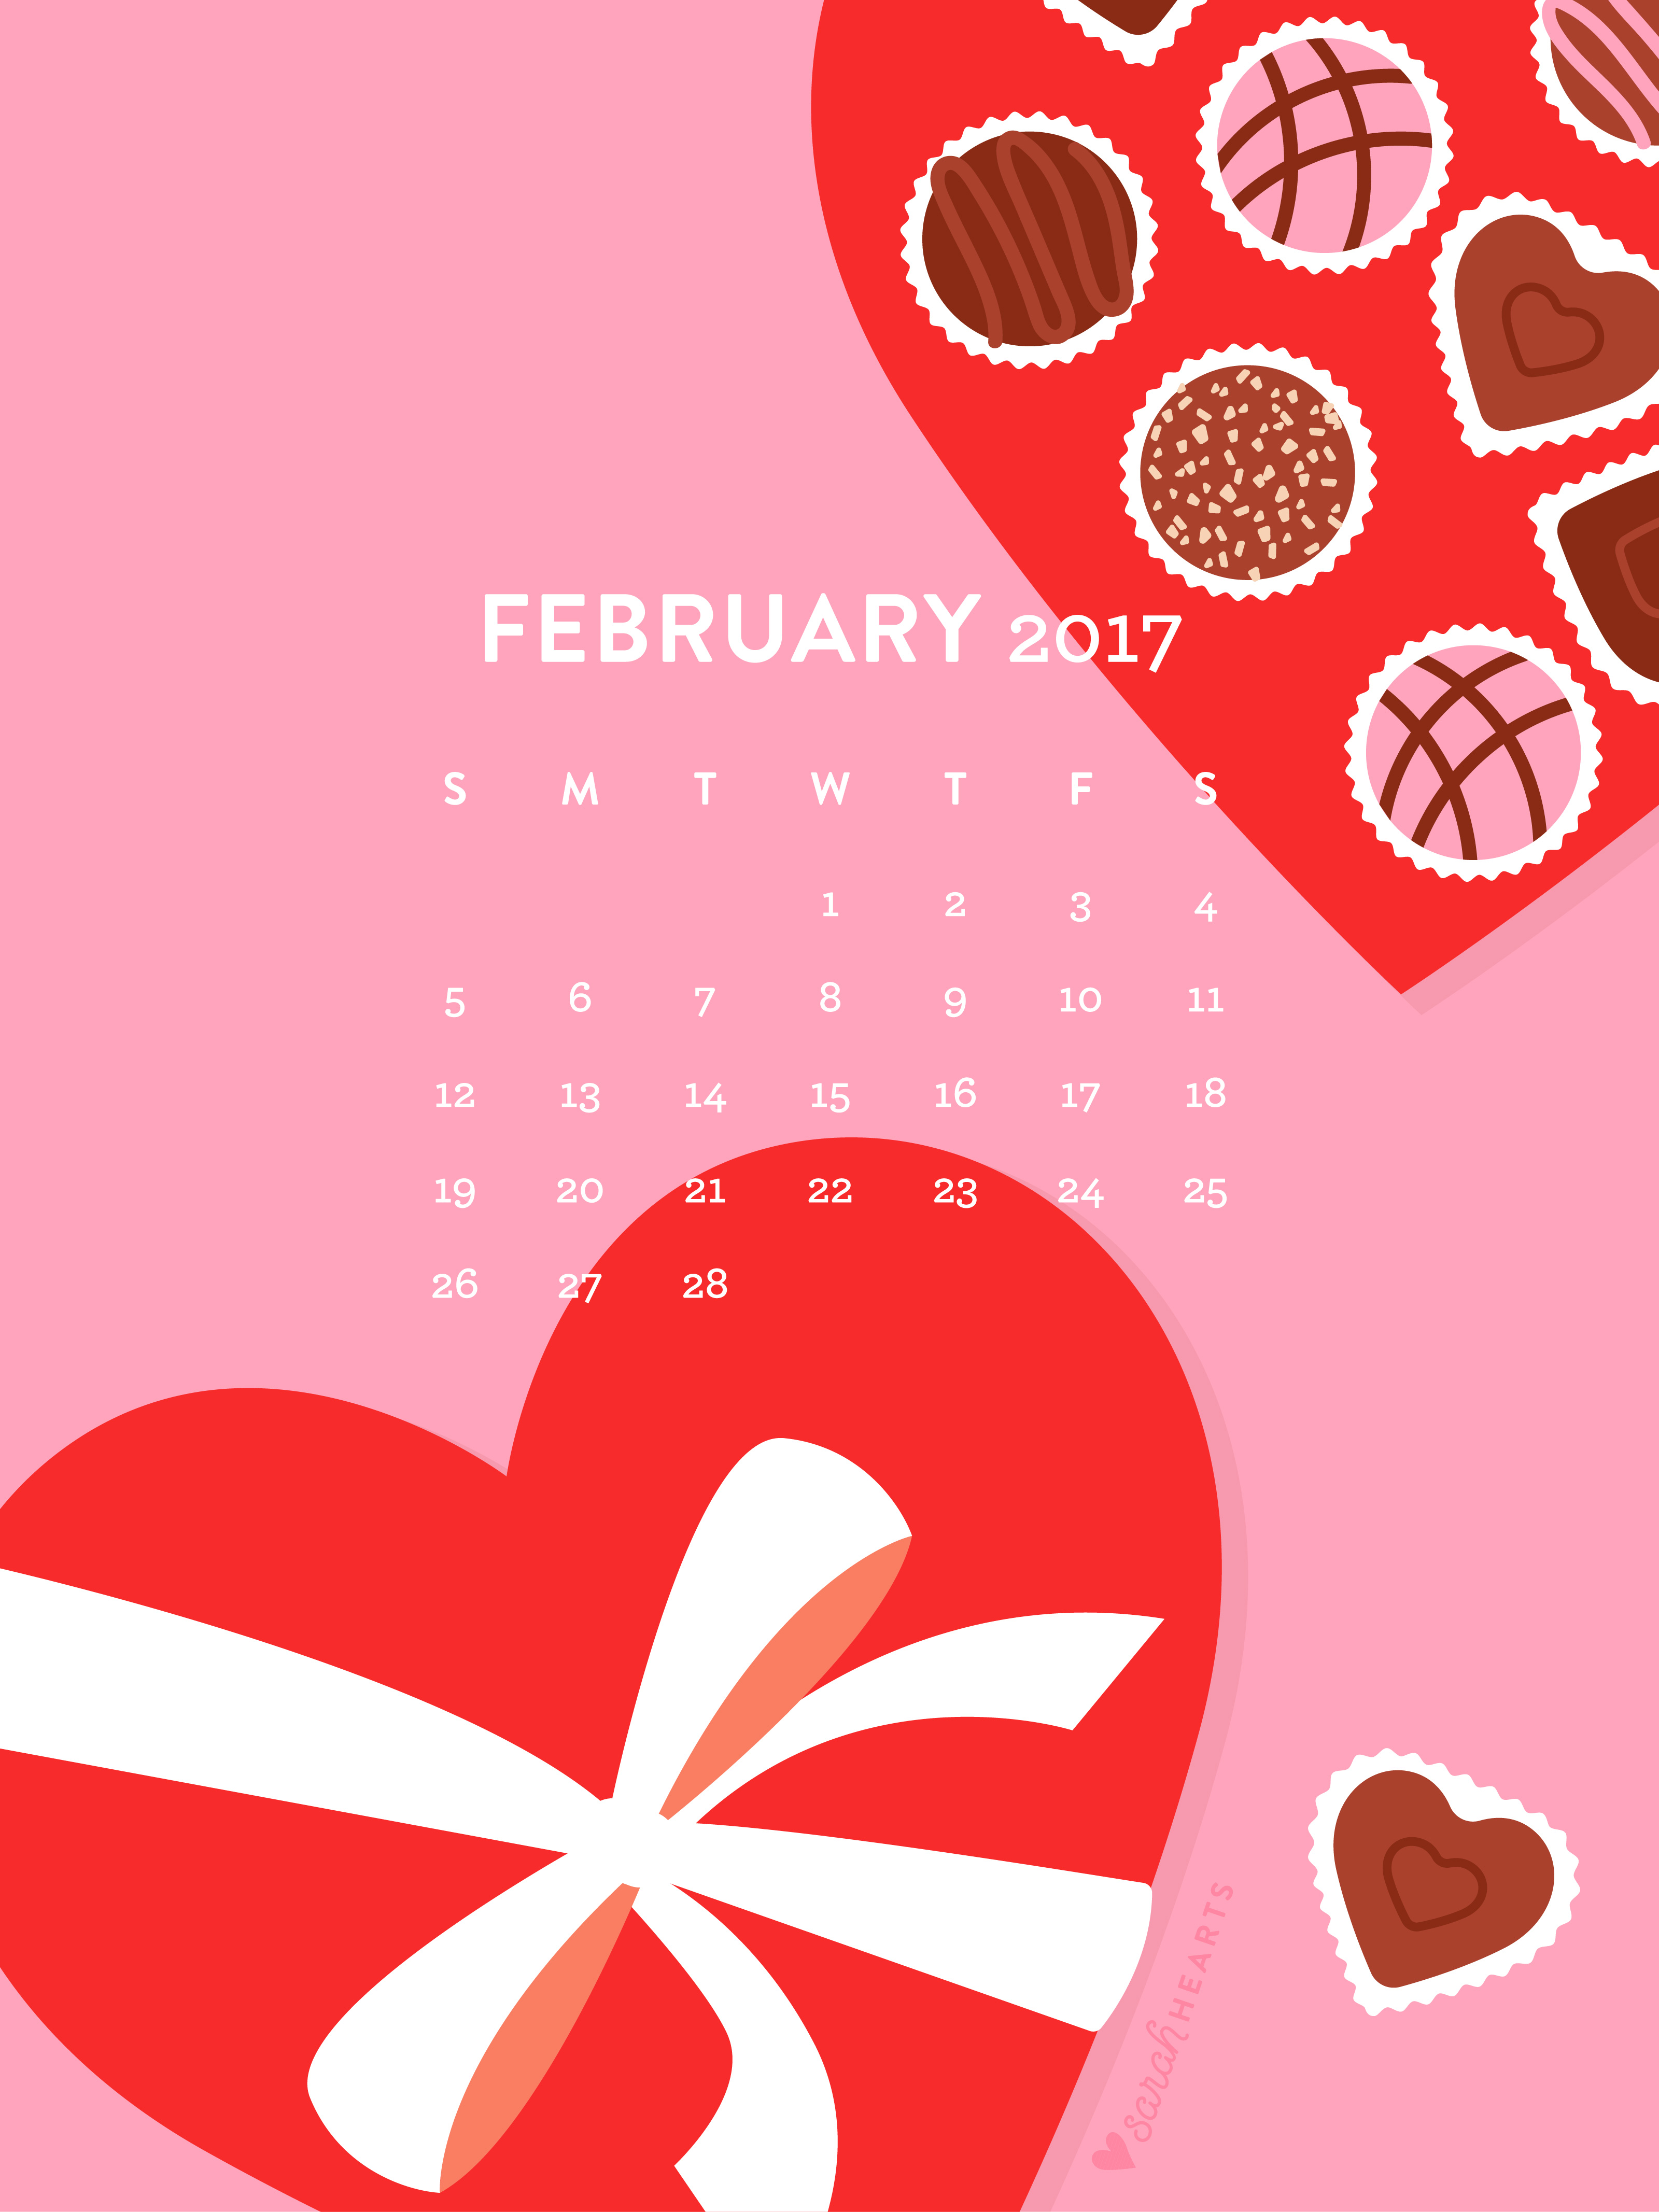 Calendar Wallpaper Ipad : Valentines february calendar wallpaper sarah hearts